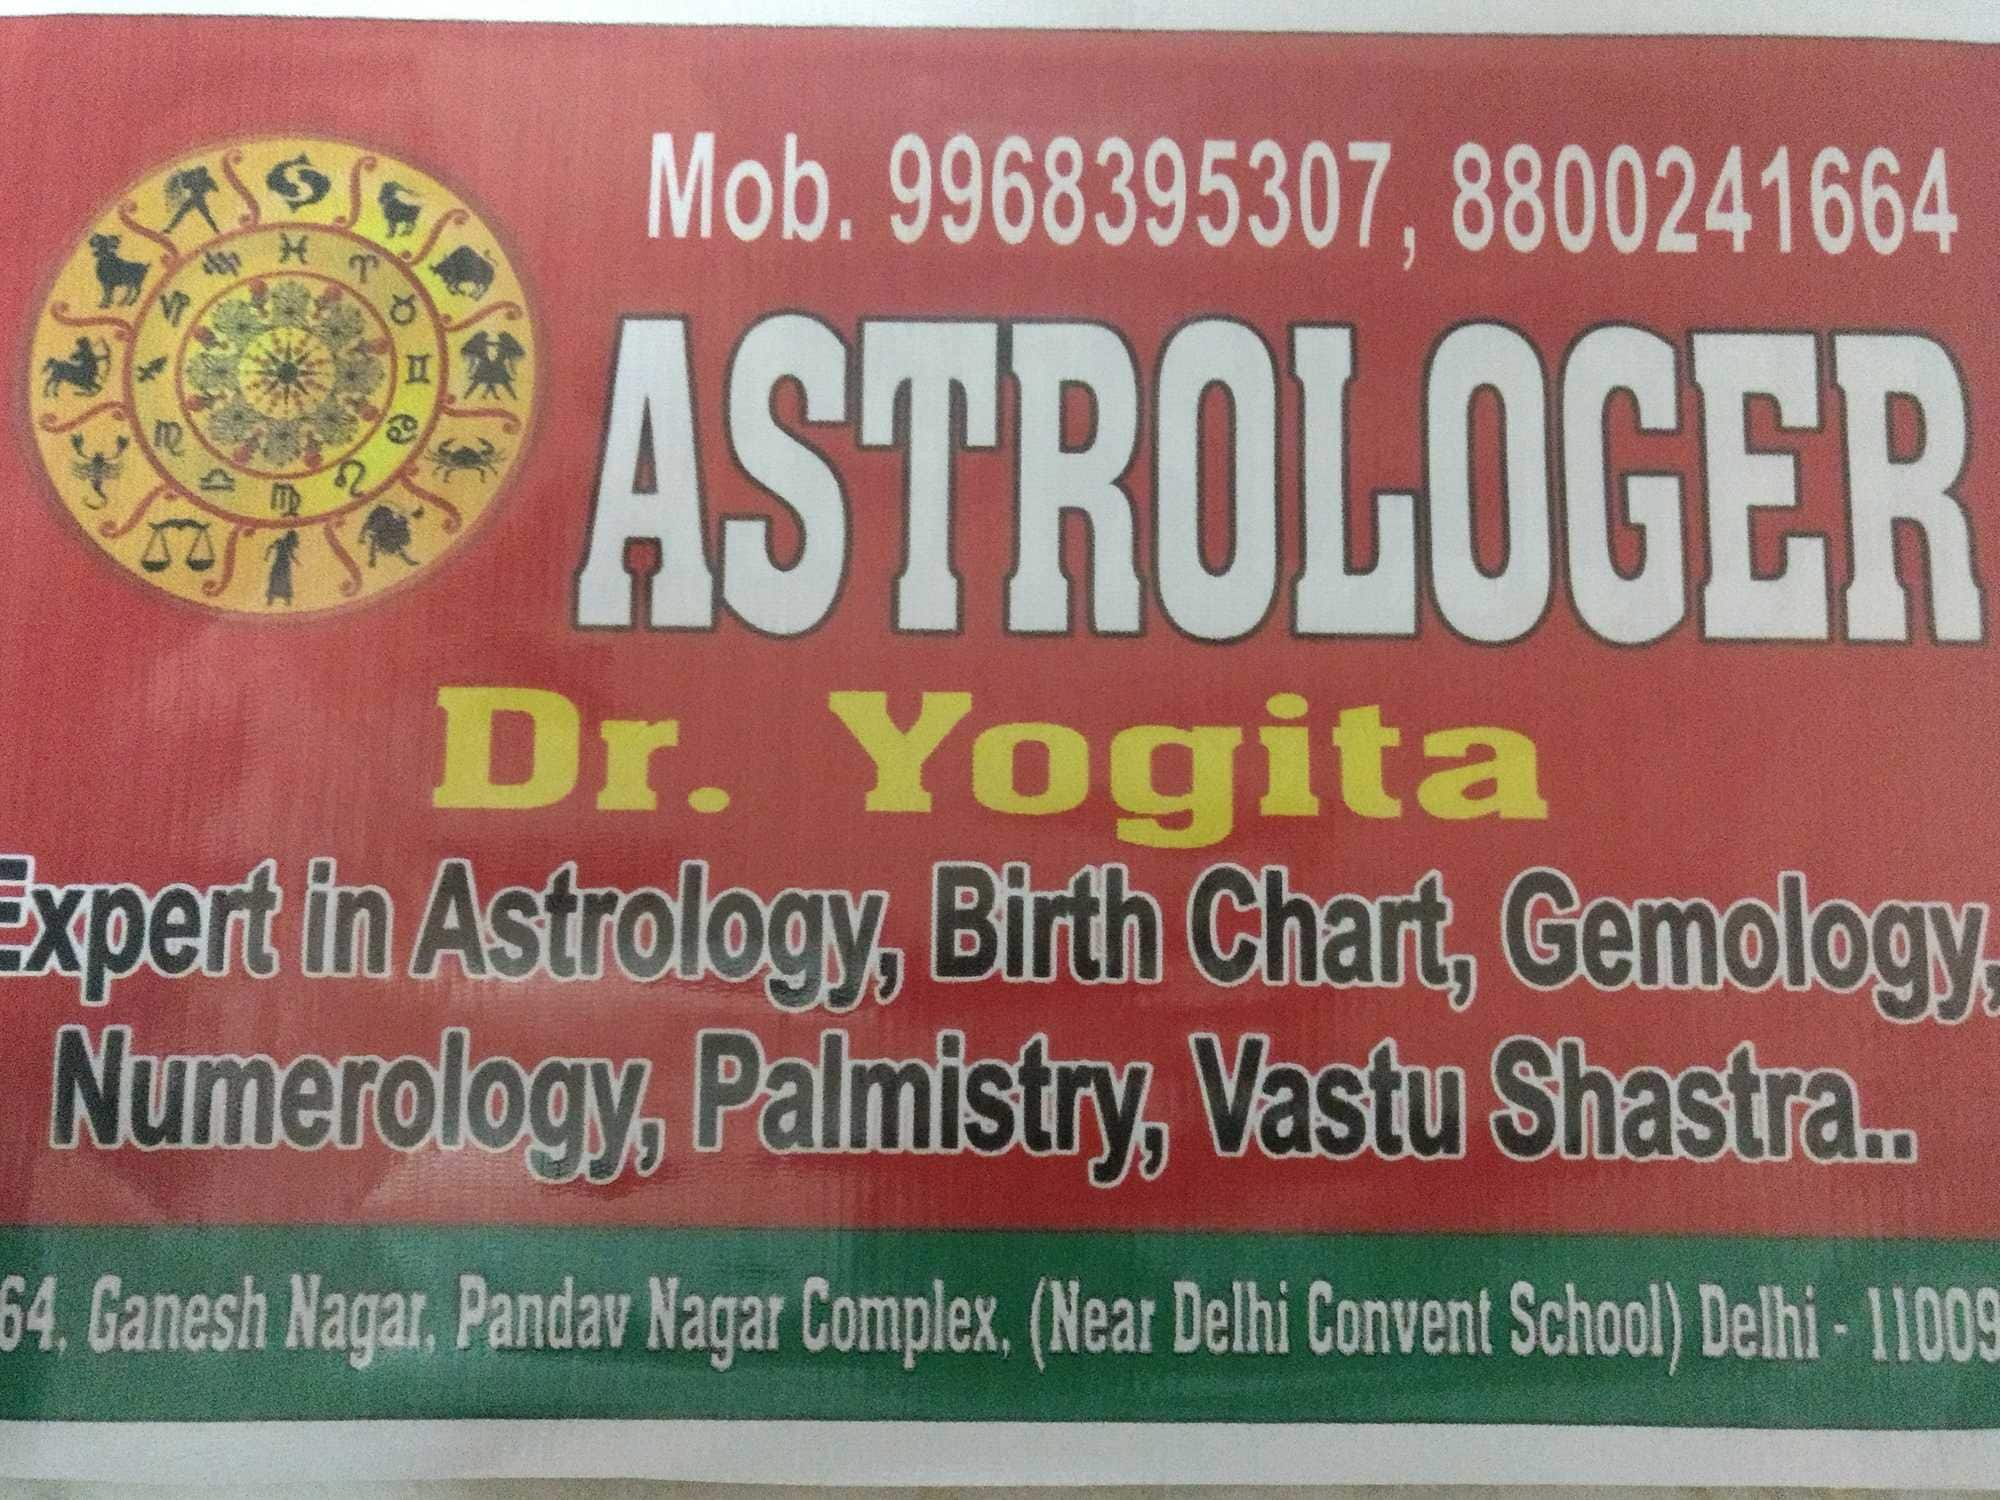 Top 100 Astrologers On Phone in Noida Sector 66 - Best On